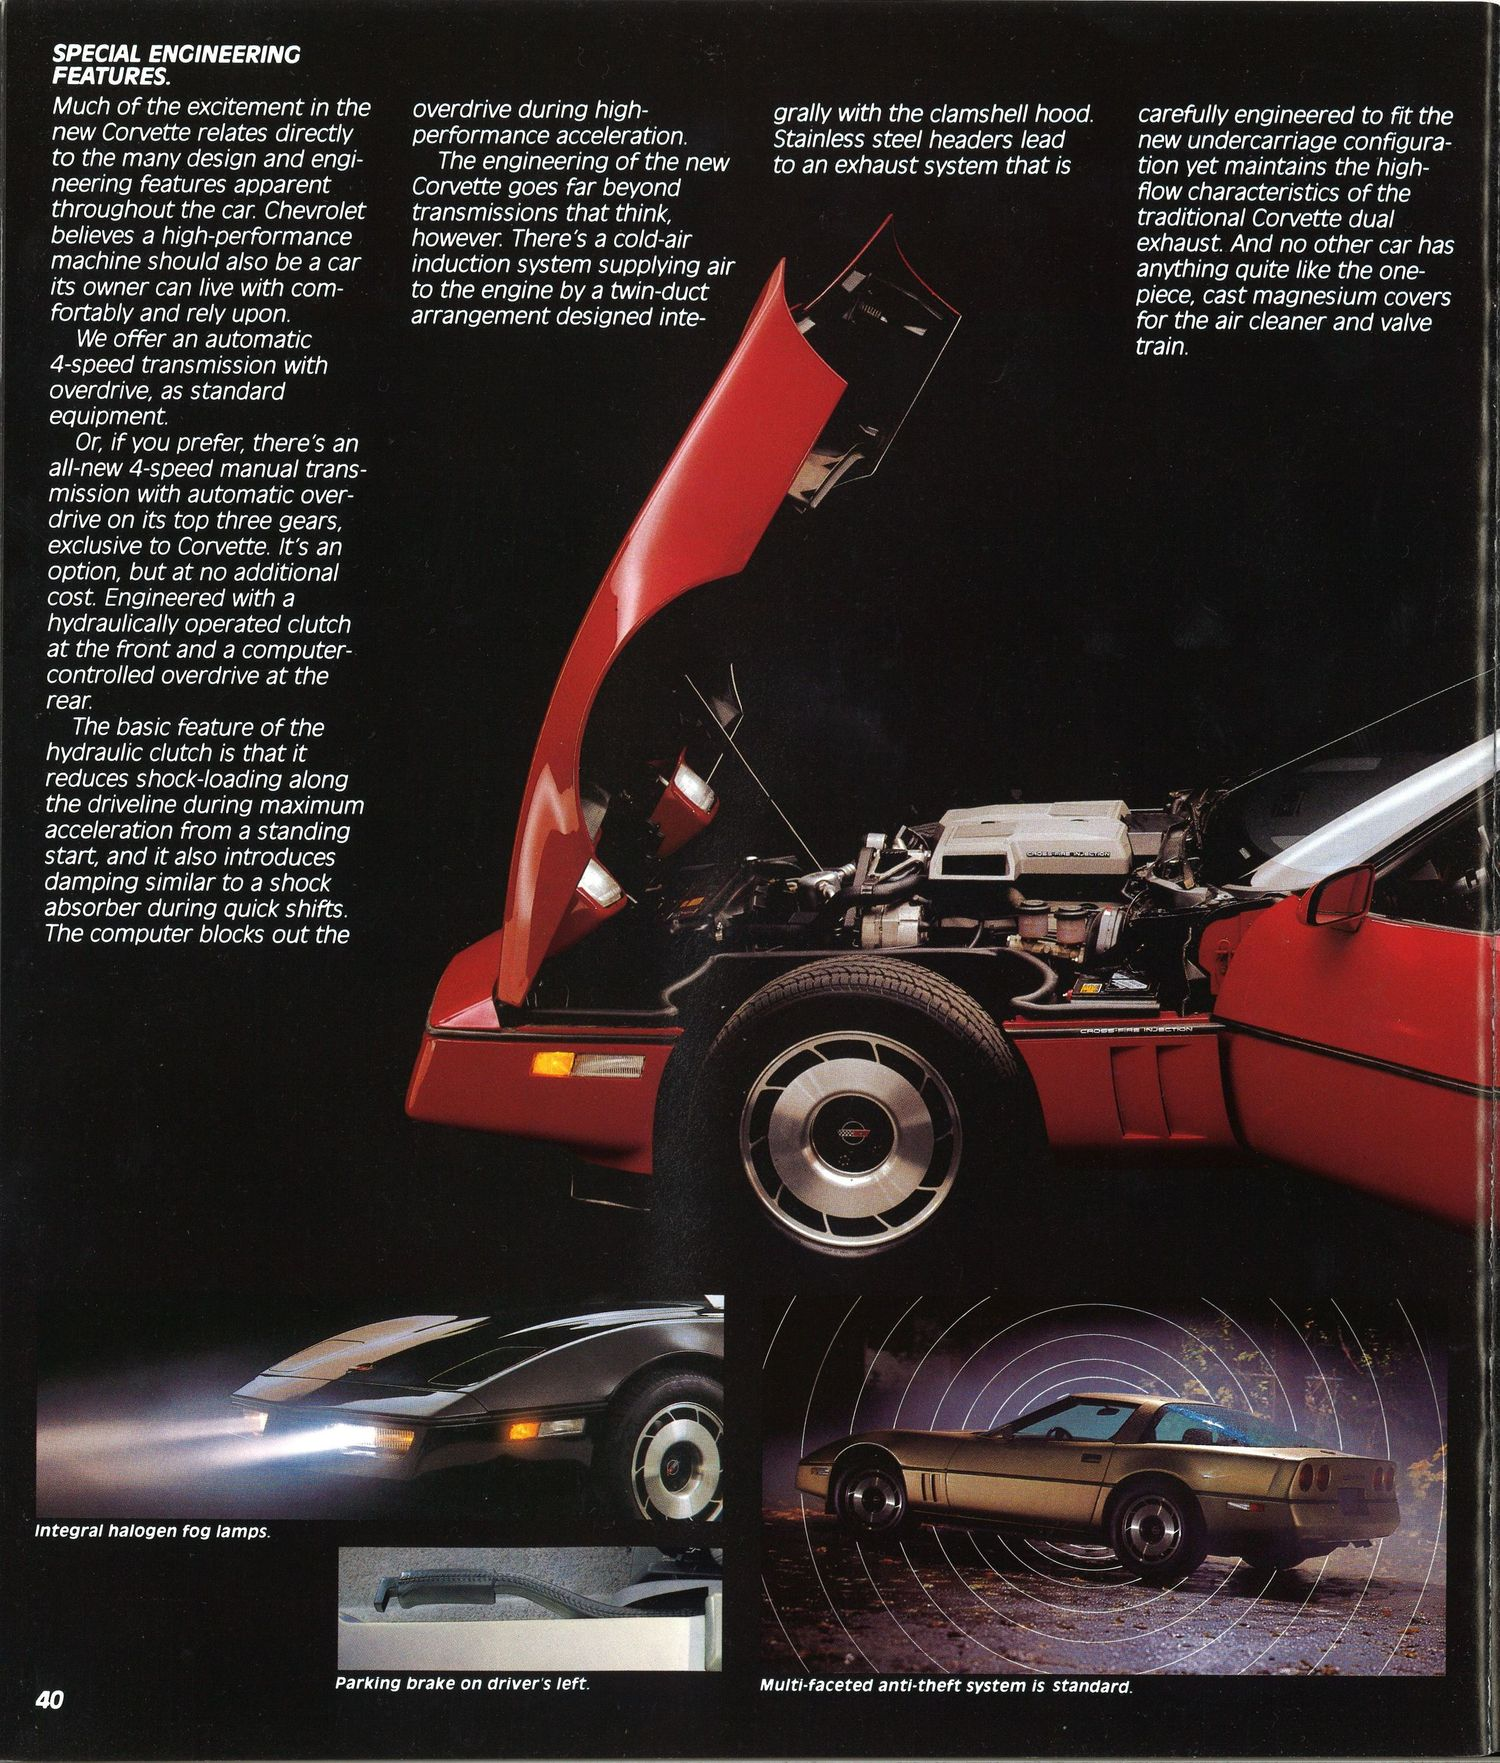 C Corvette Brochure Is A Blast From The Past Video Photo Gallery